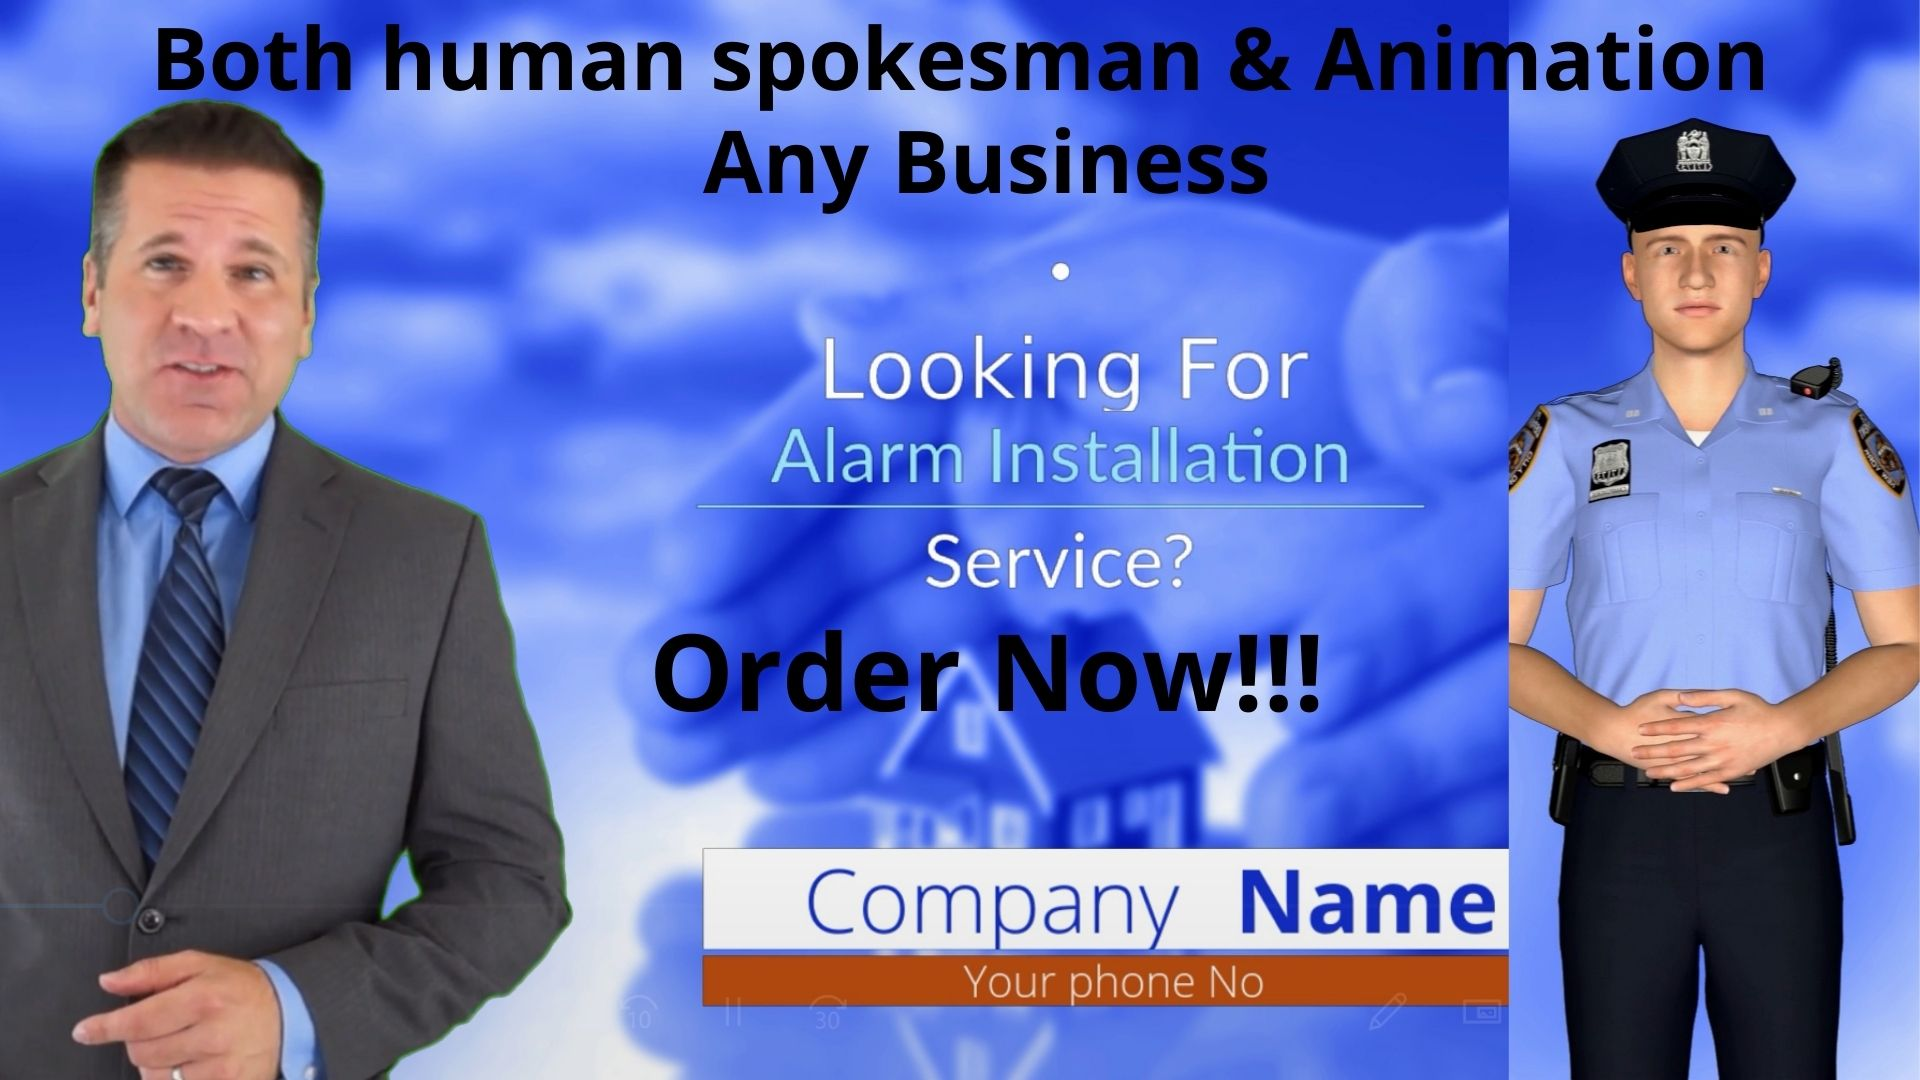 Professional Animation and human spokesman video ads